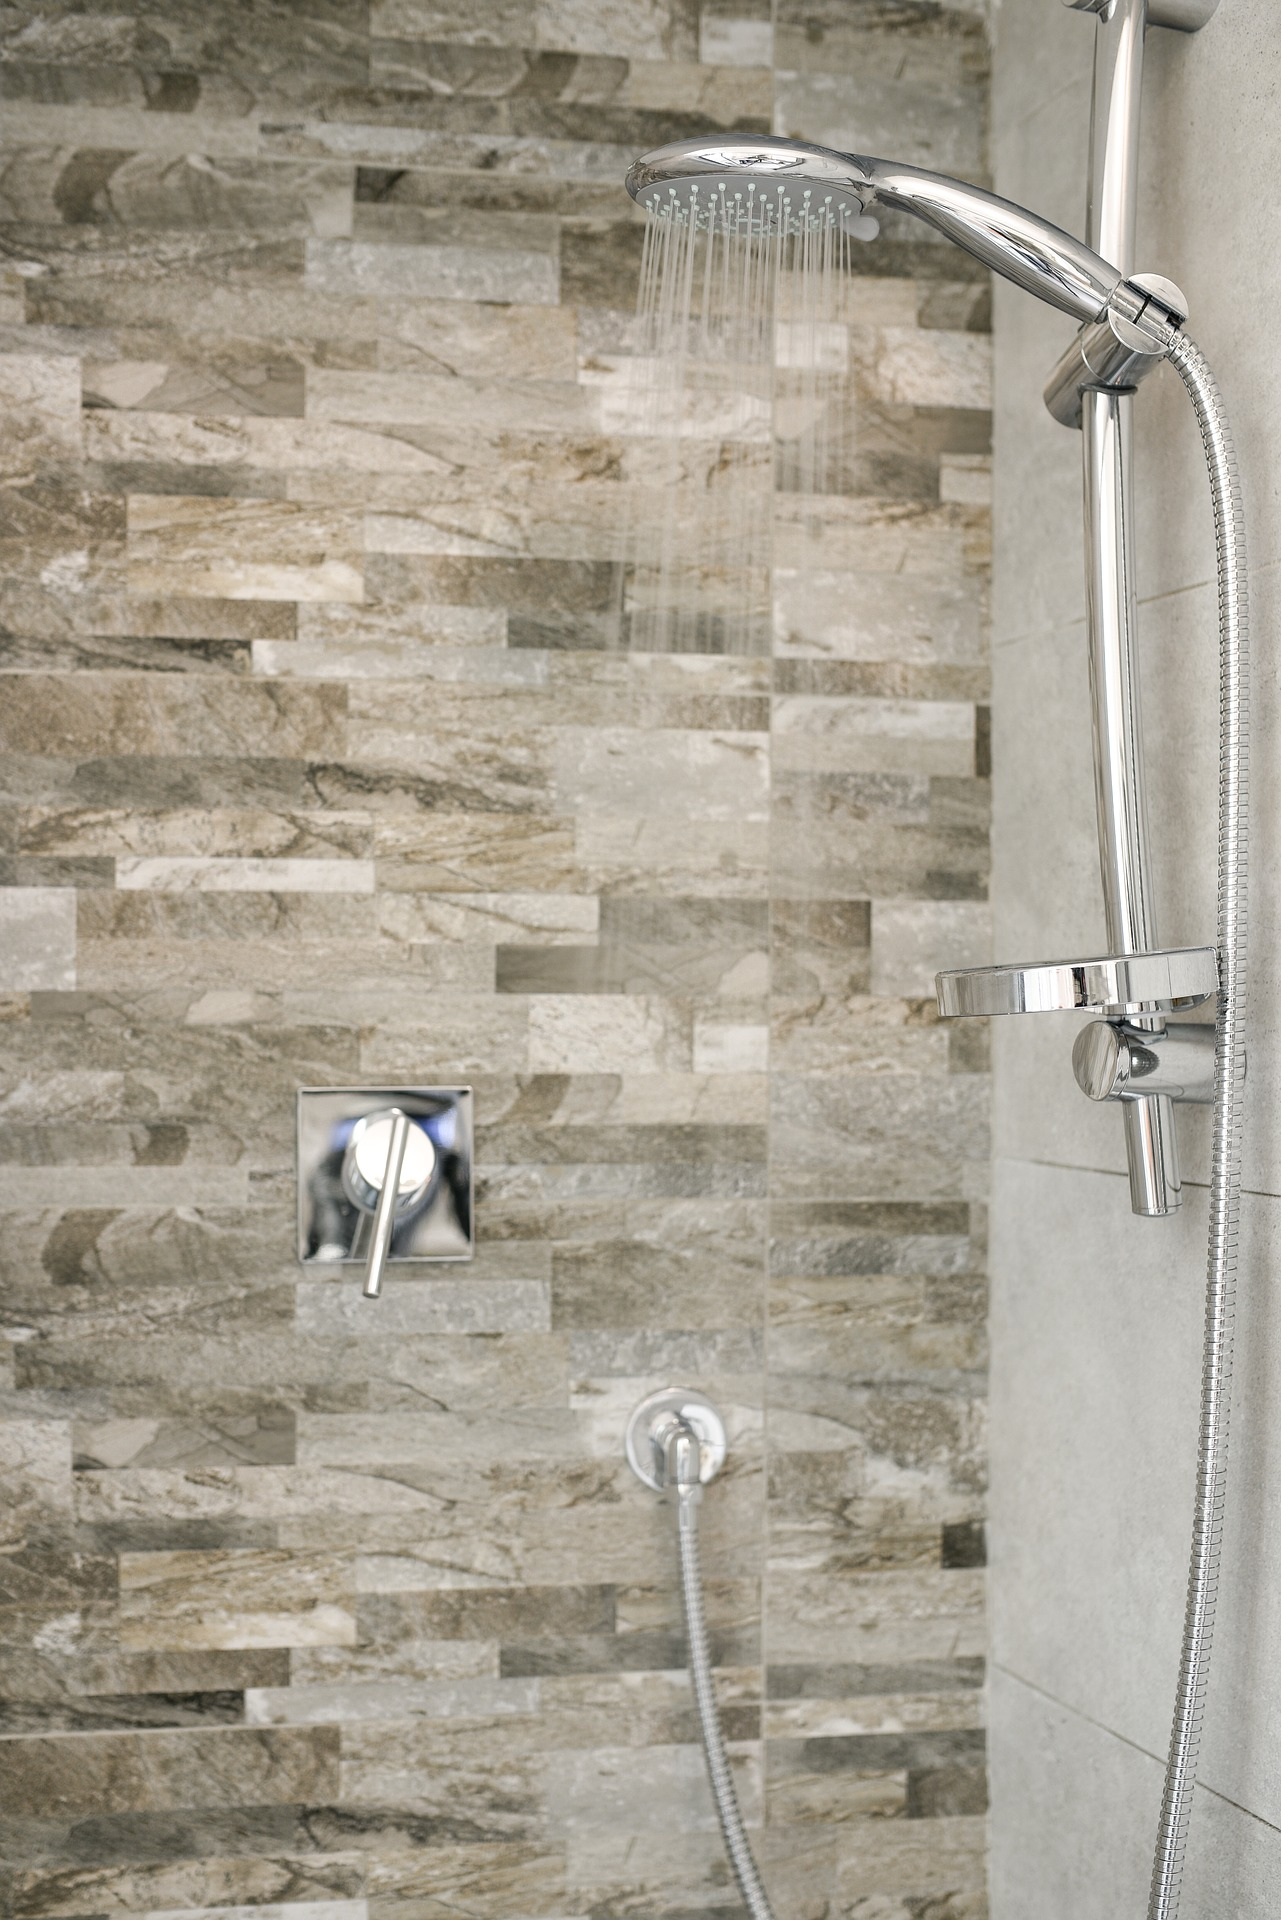 Shower with stainless steel fixtures and brown, black and white tiles on the One Stop Plumbing Do It Yourself DIY page